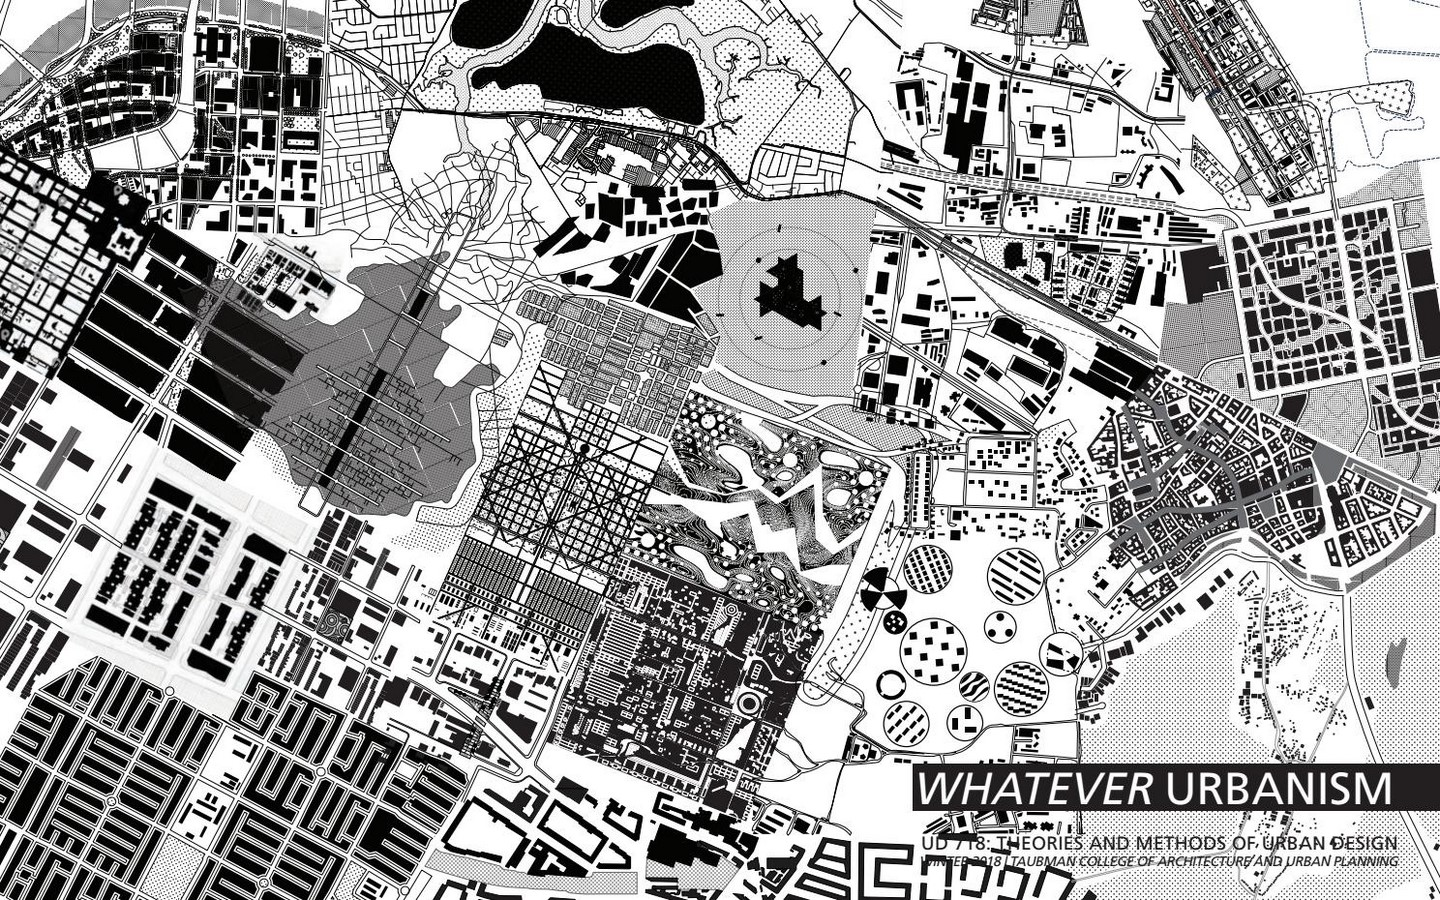 Post Industrial World and Discourse of Urban Development